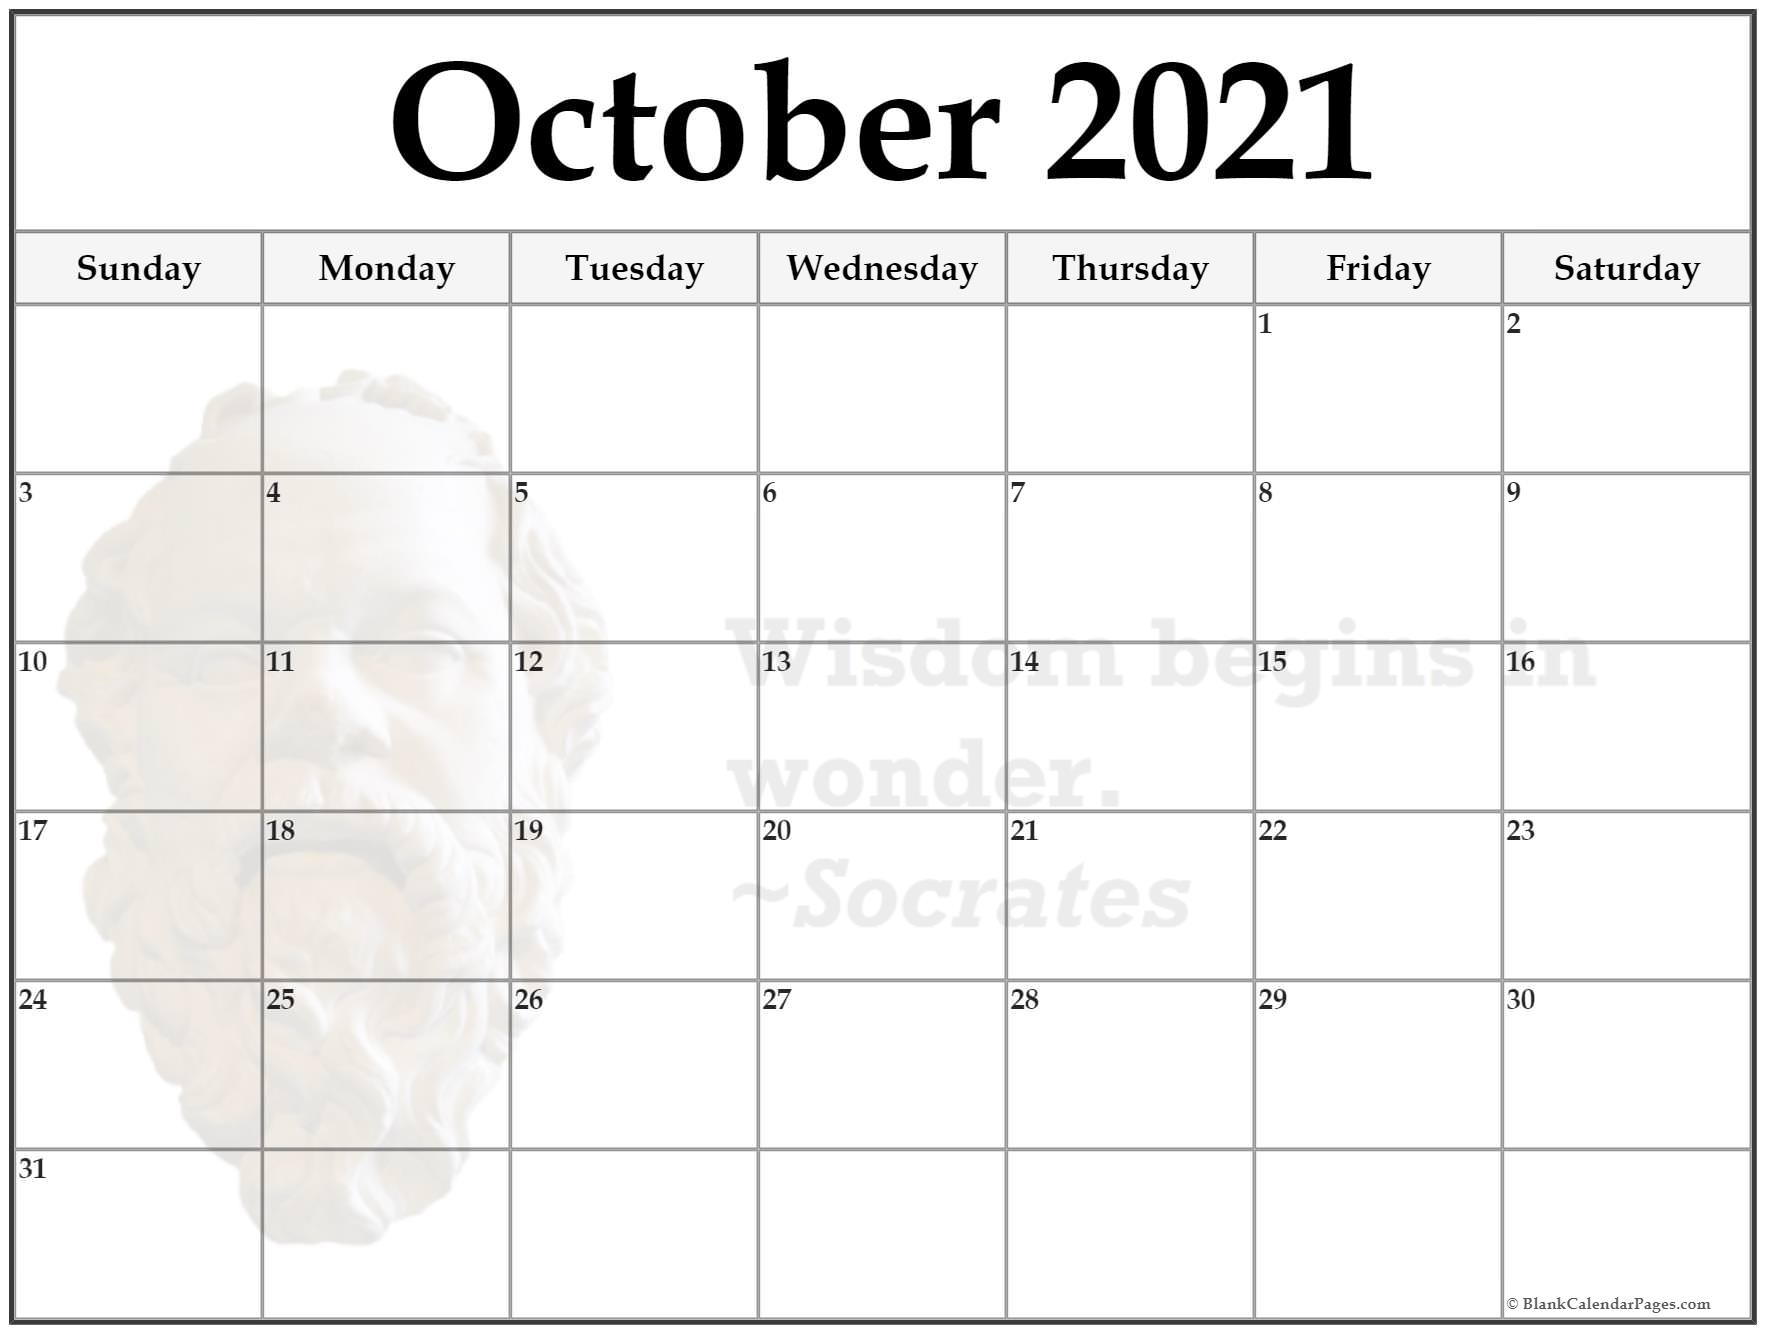 October 2019 monthly quote calendar template. Wisdom begins in wonder. ~Socrates